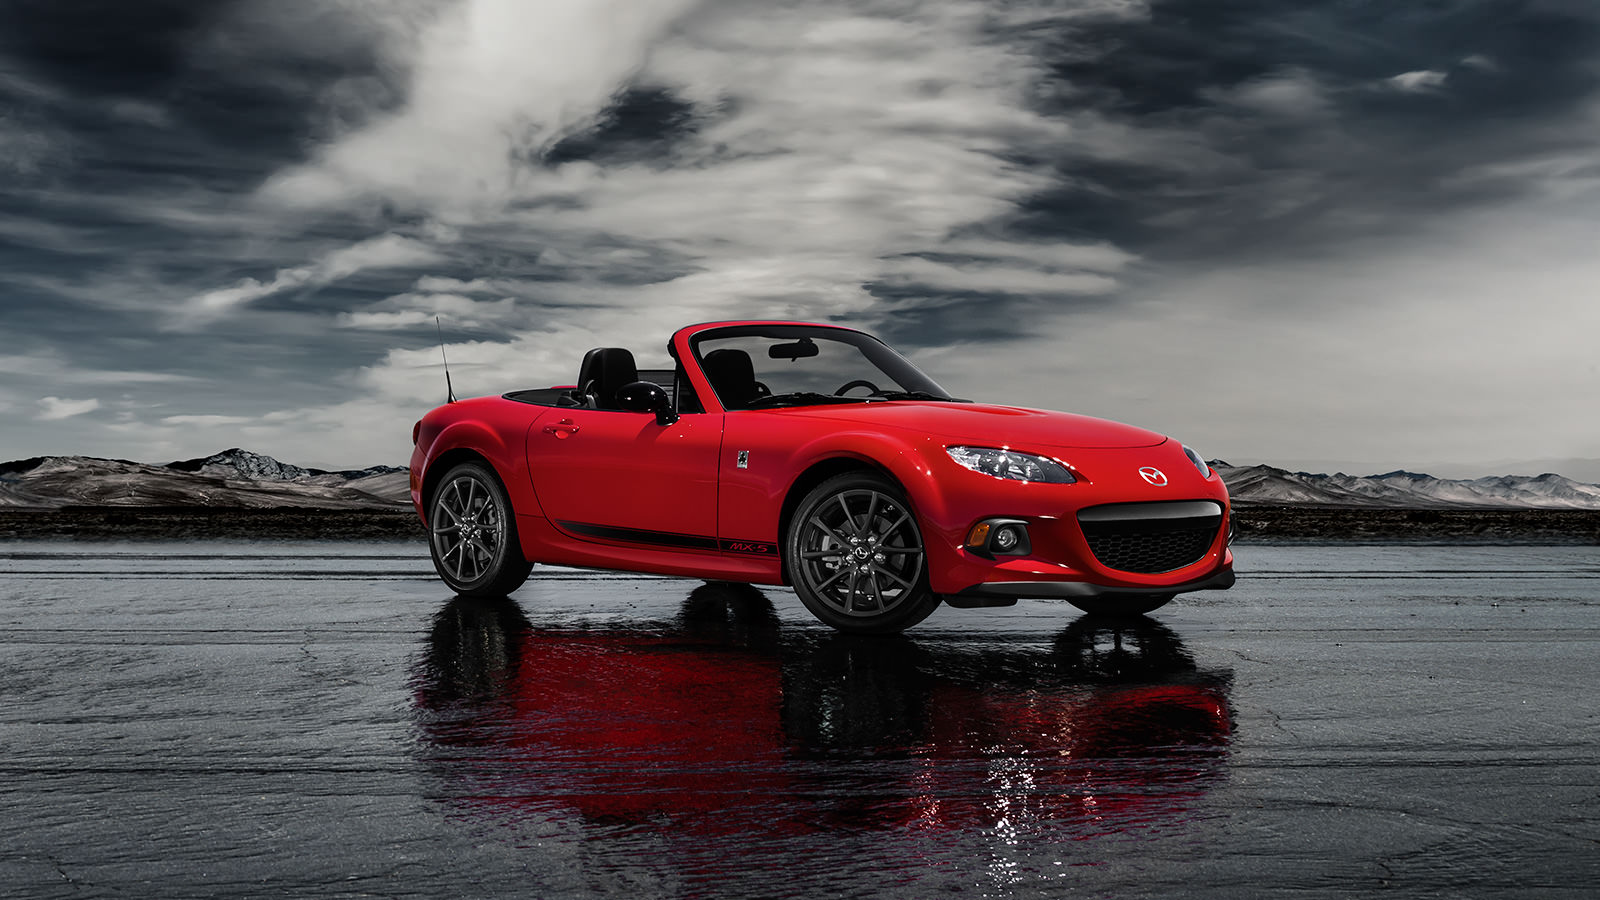 2015 mazda mx 5 for sale at west coast mazda in pitt meadows bc. Black Bedroom Furniture Sets. Home Design Ideas